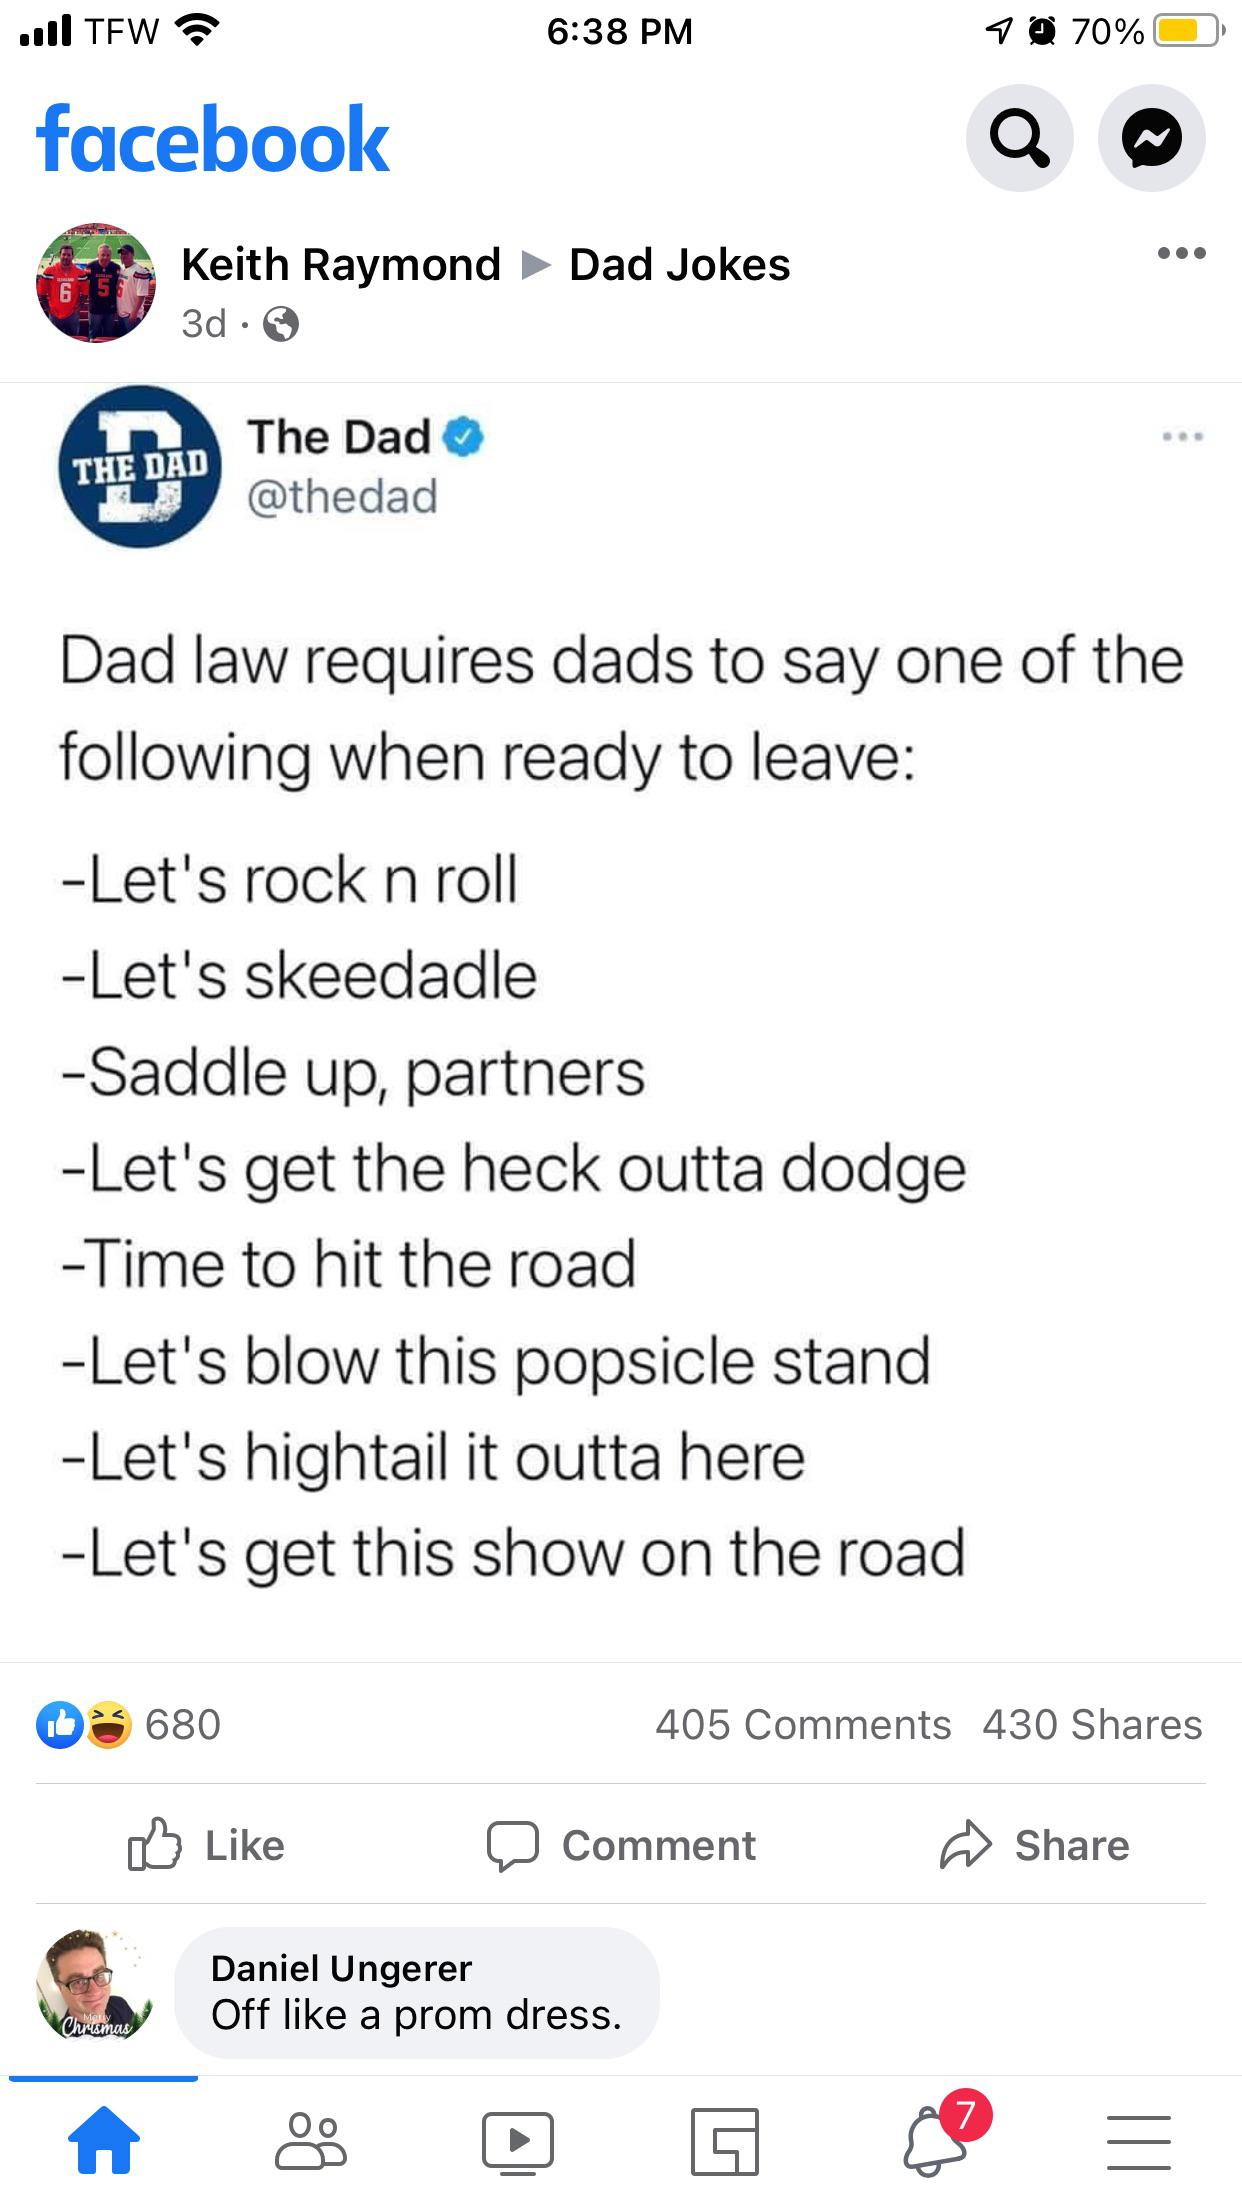 The Dads law 😅